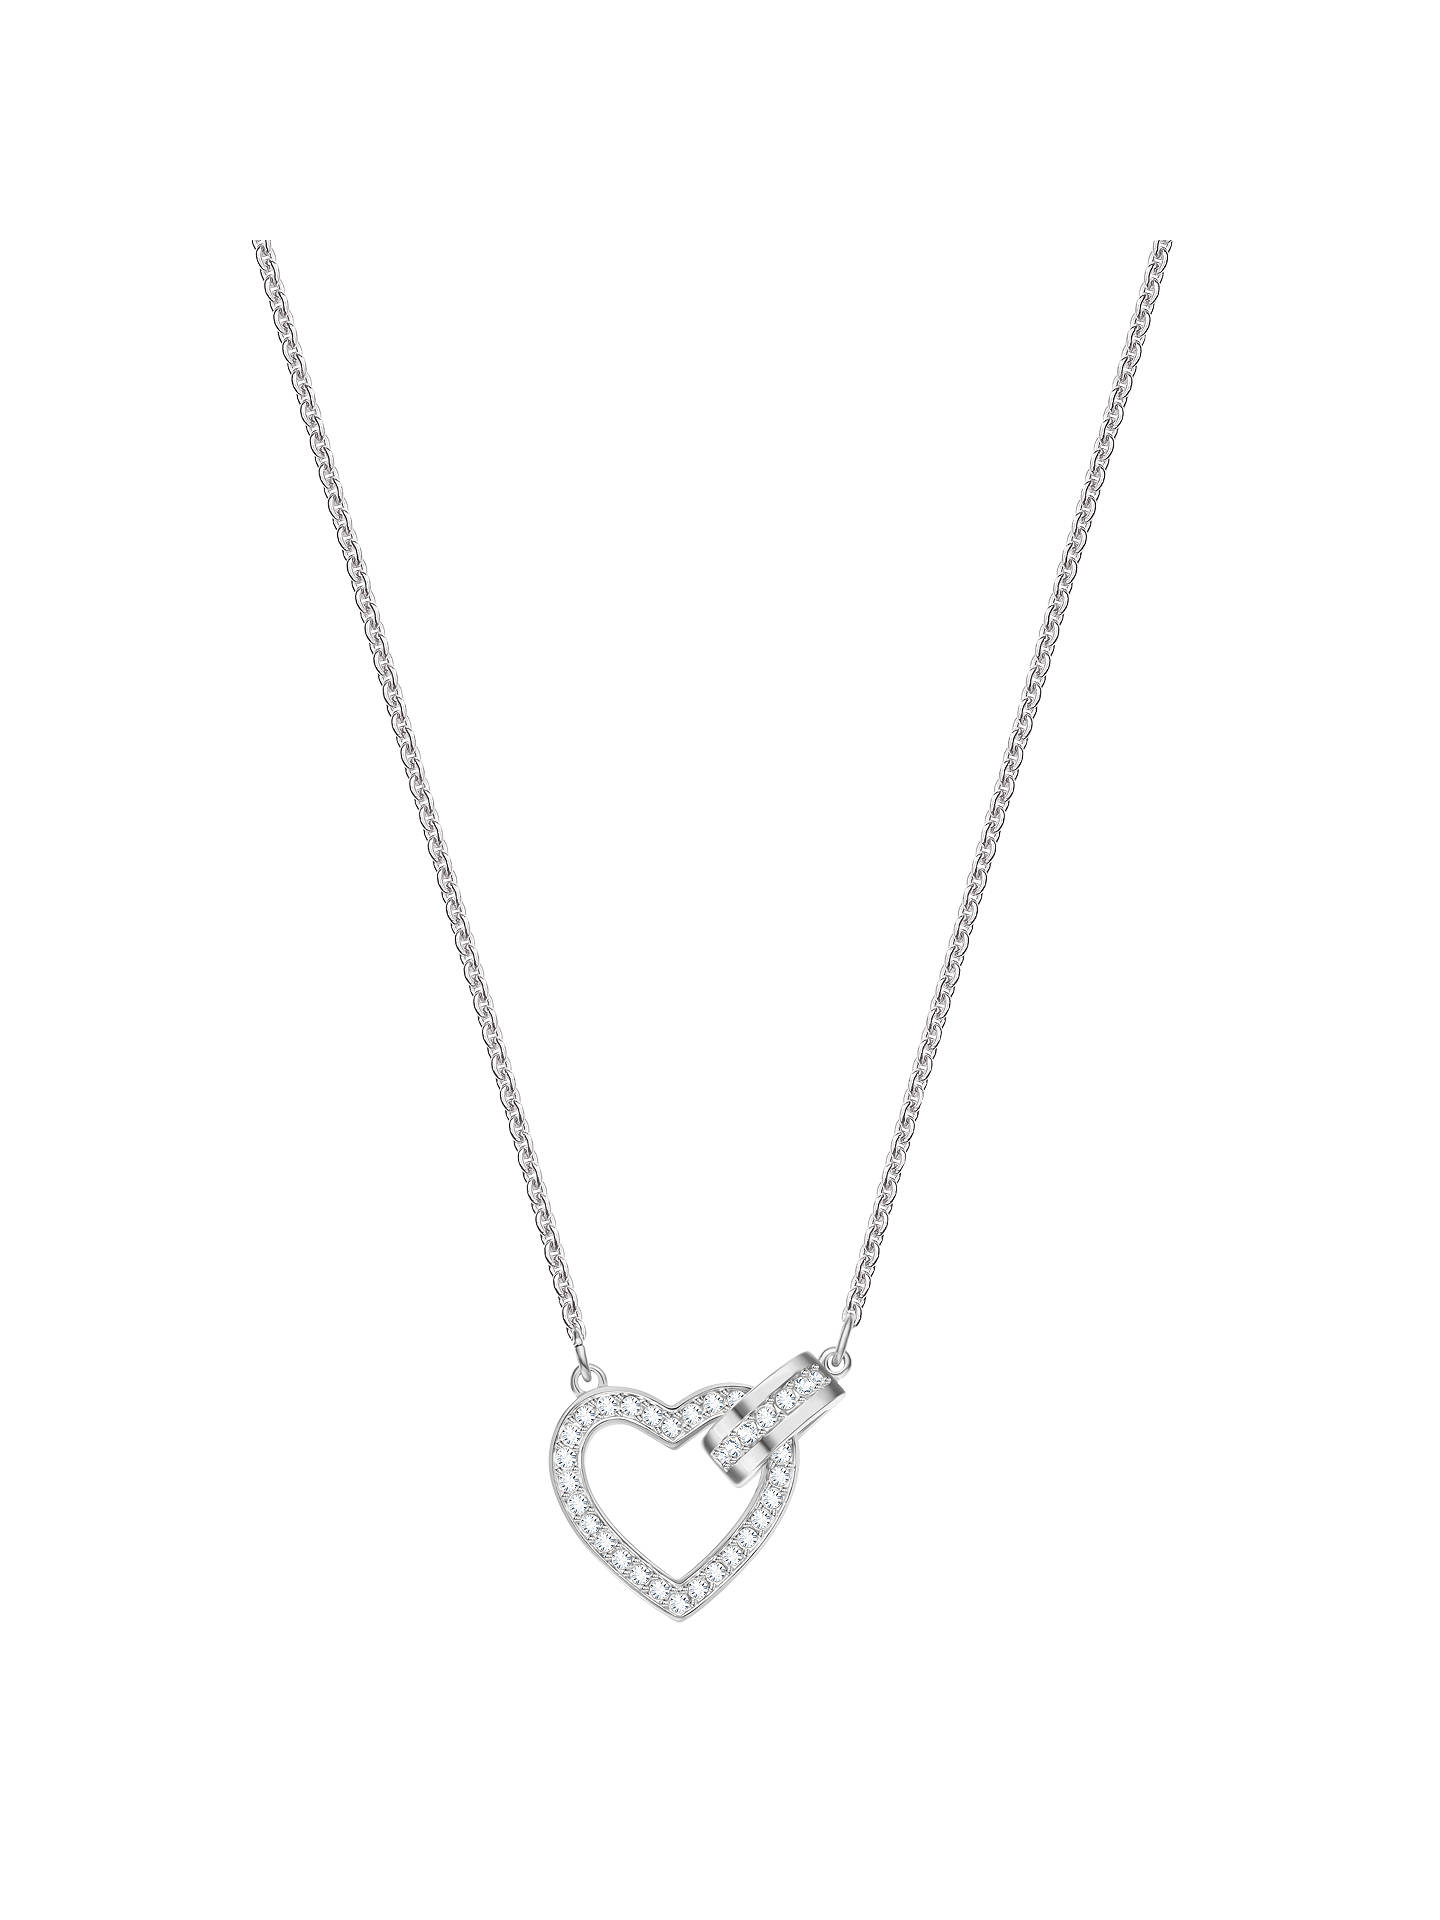 BuySwarovski Lovely Crystal Heart Pendant Necklace, Silver Online at johnlewis.com